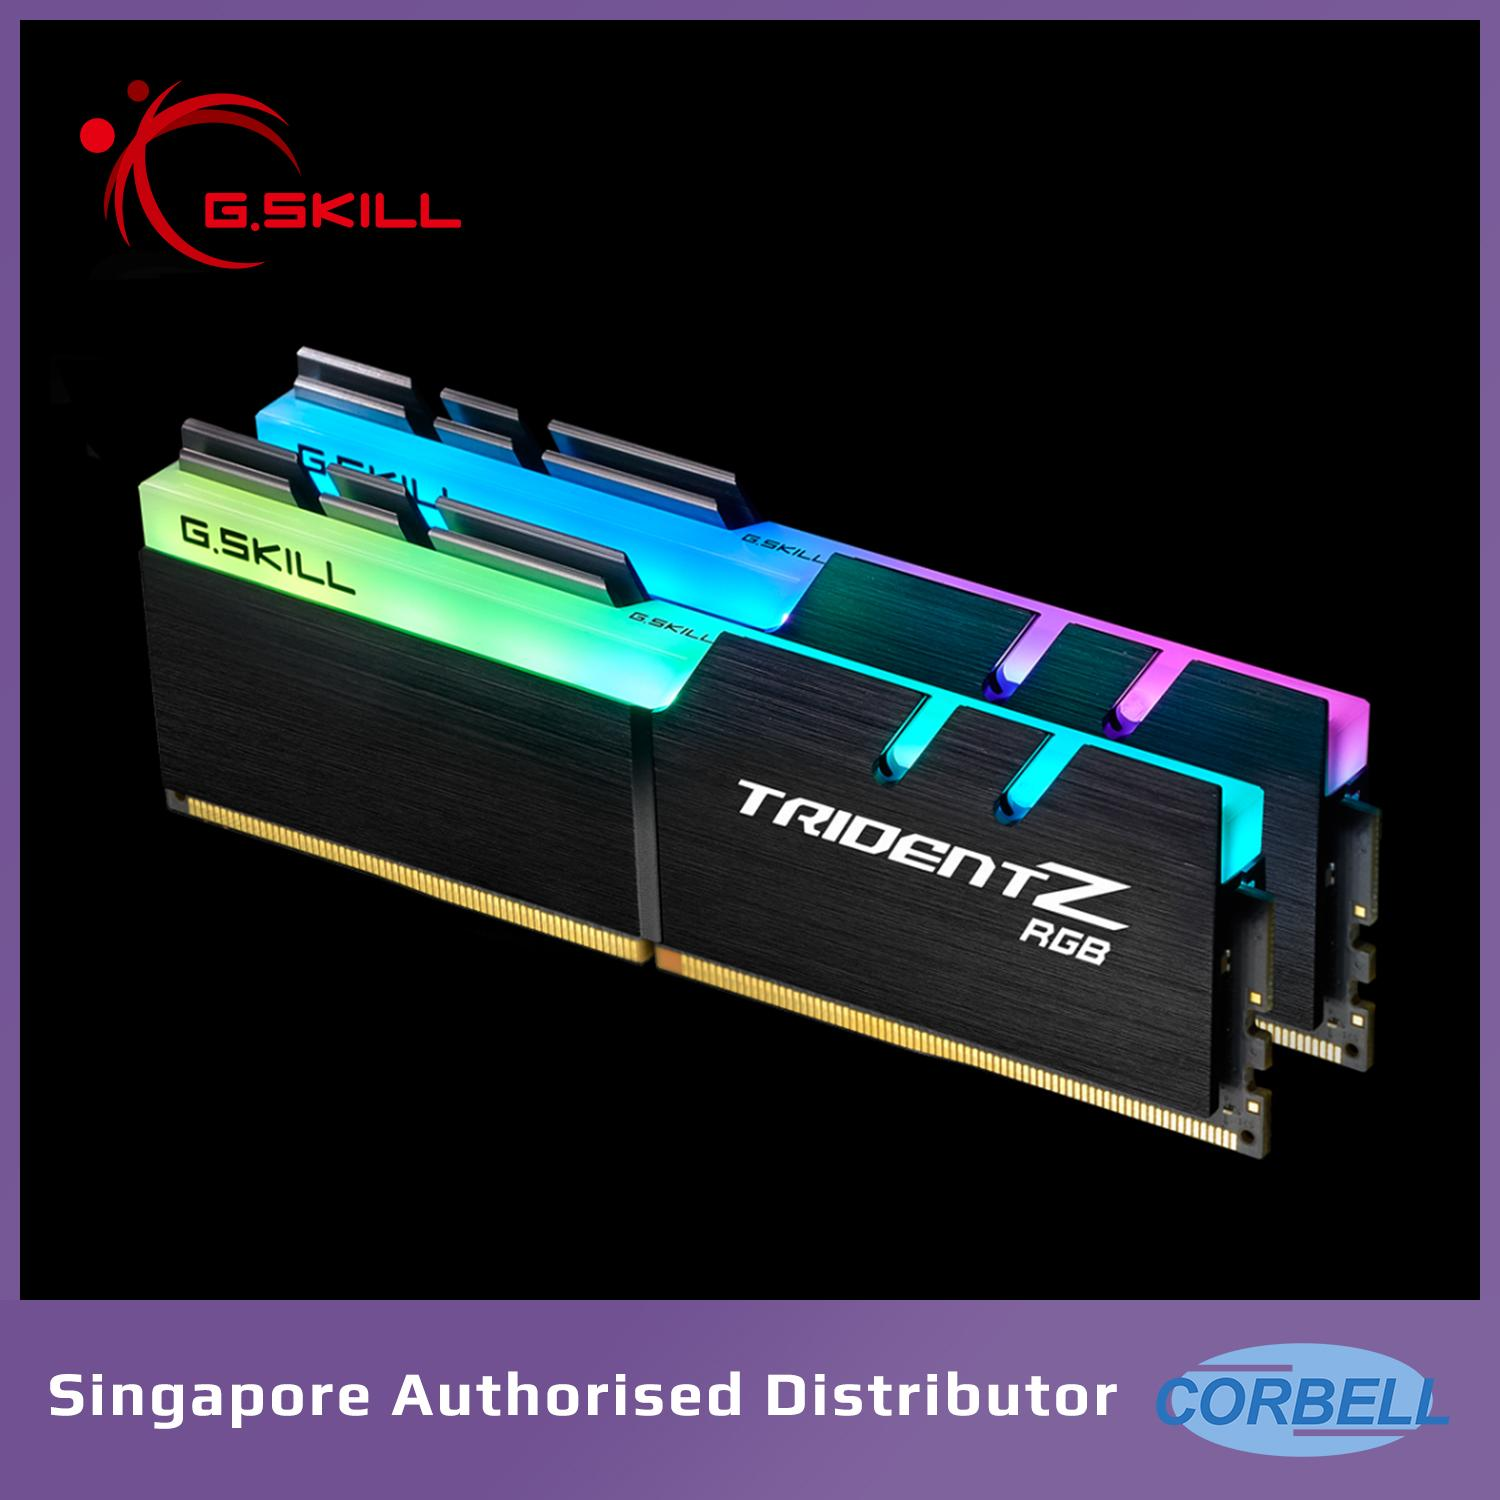 G.skill Trident Z Rgb 3200mhz 2x8gb Ddr4 Dual Channel Kit By Corbell Technology Pte Ltd.